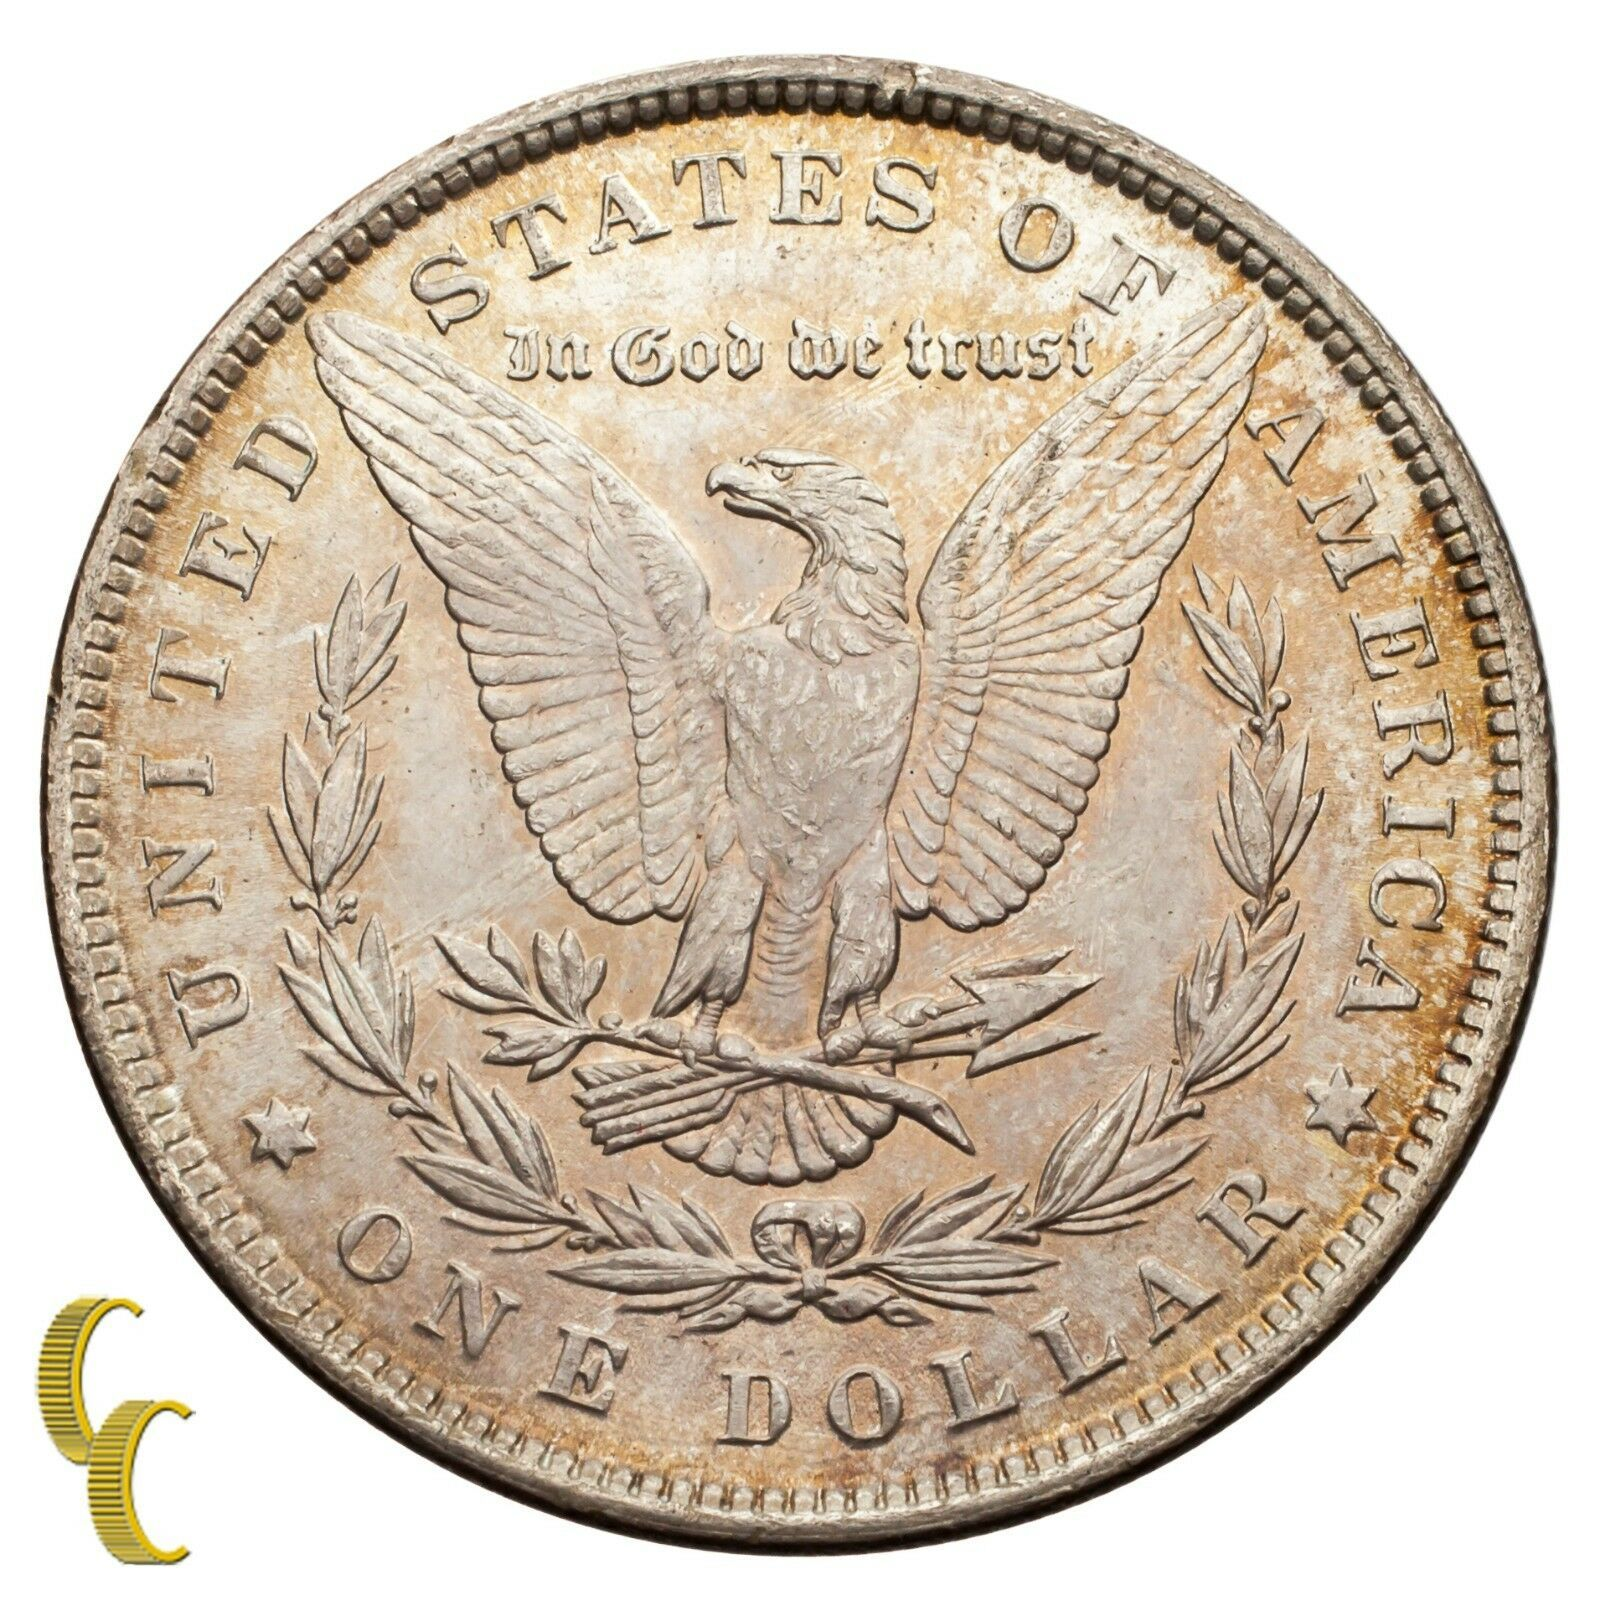 1884 Silver Morgan Dollar (Choice BU Condition) Full Mint Luster image 4